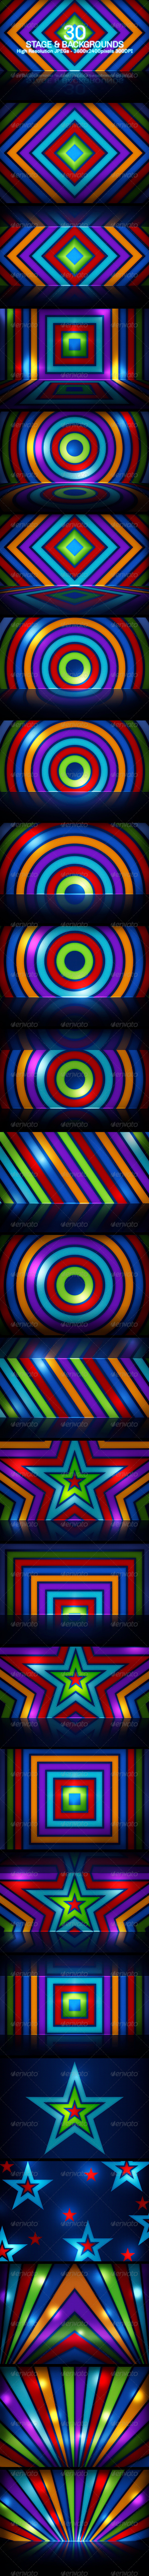 GraphicRiver 30 Stage and Backgrounds 5157178